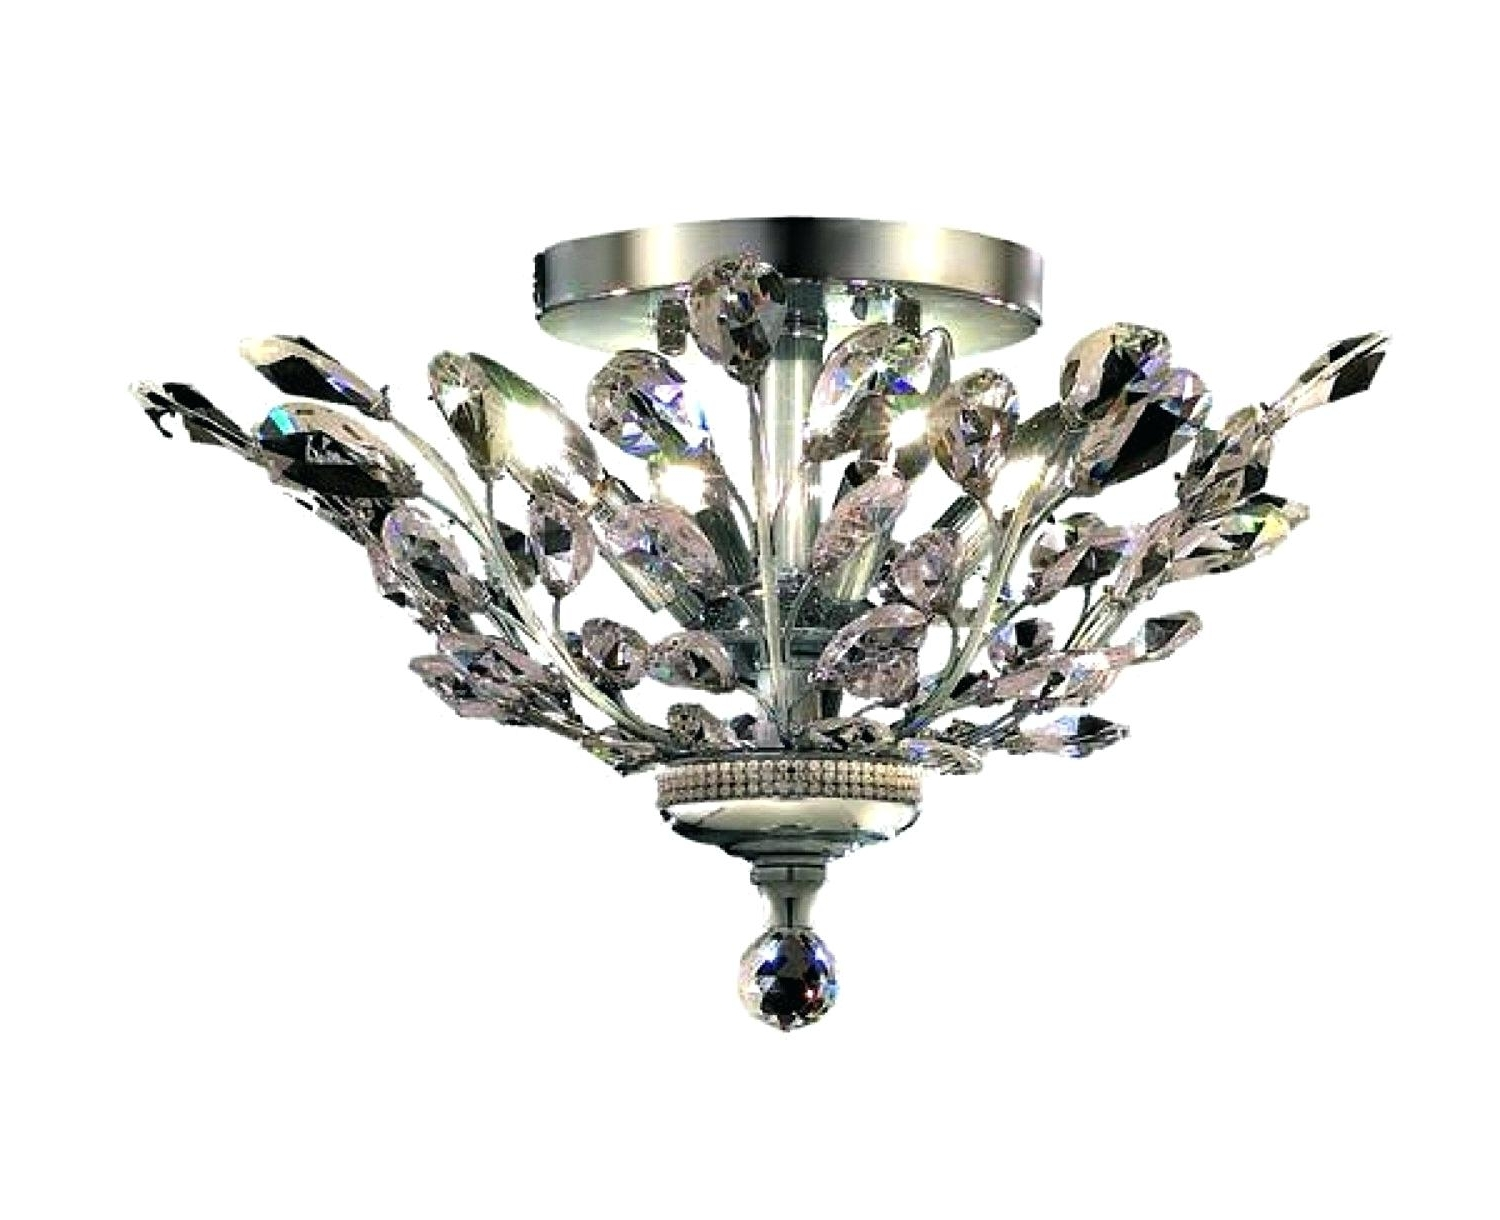 Most Popular Flush Fitting Chandelier For Bathroom Ceiling Lights Flush Fitting Chandelier Hanging Light (View 16 of 20)